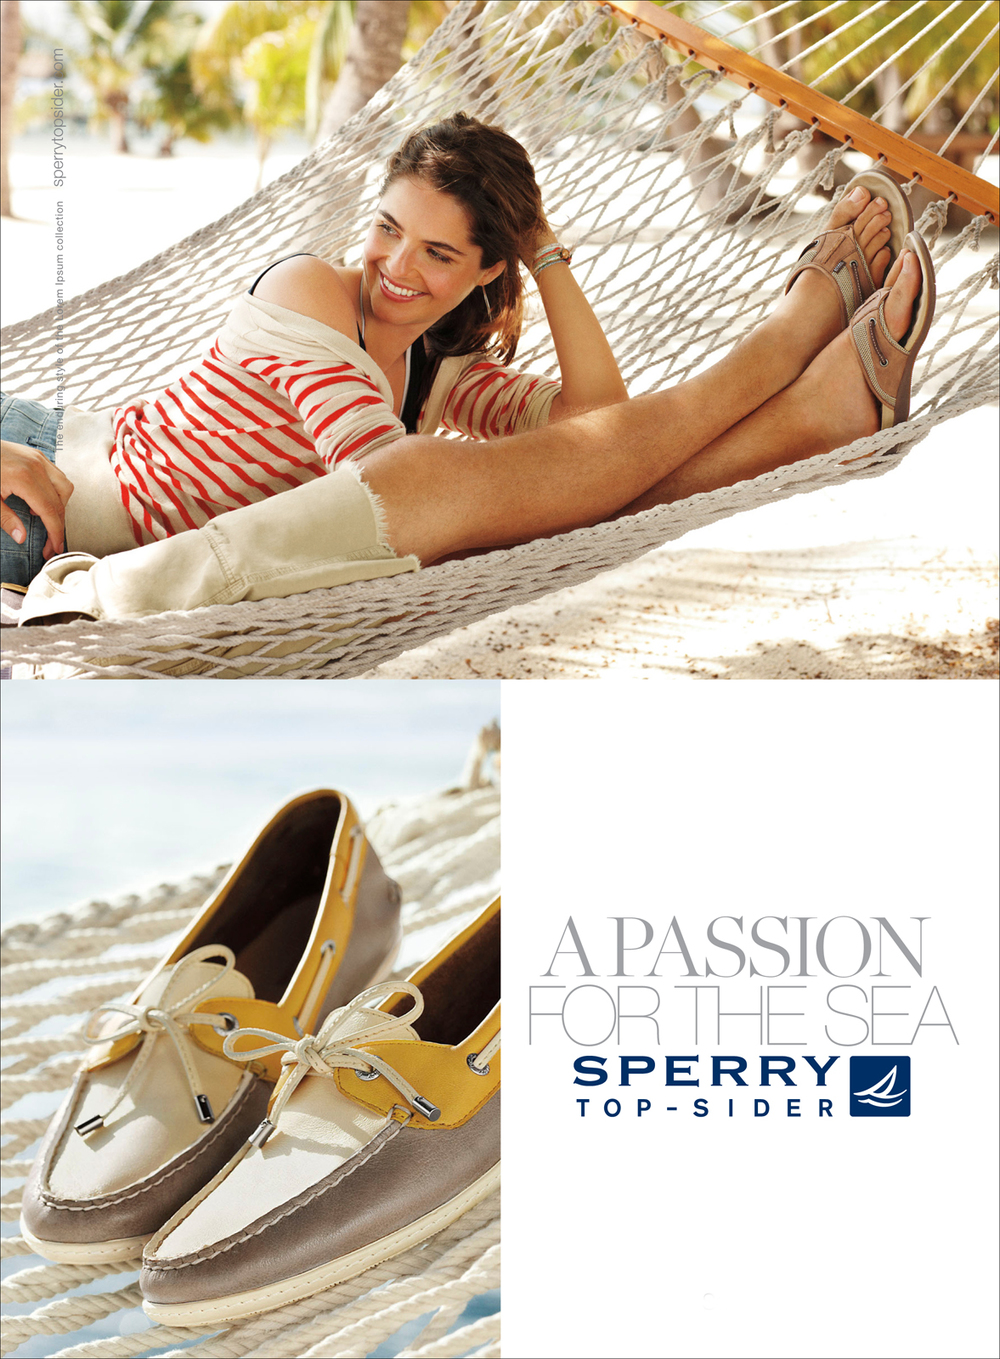 SC_ADVERTISING_SPERRY_KEYS_SS_2010_02.jpg